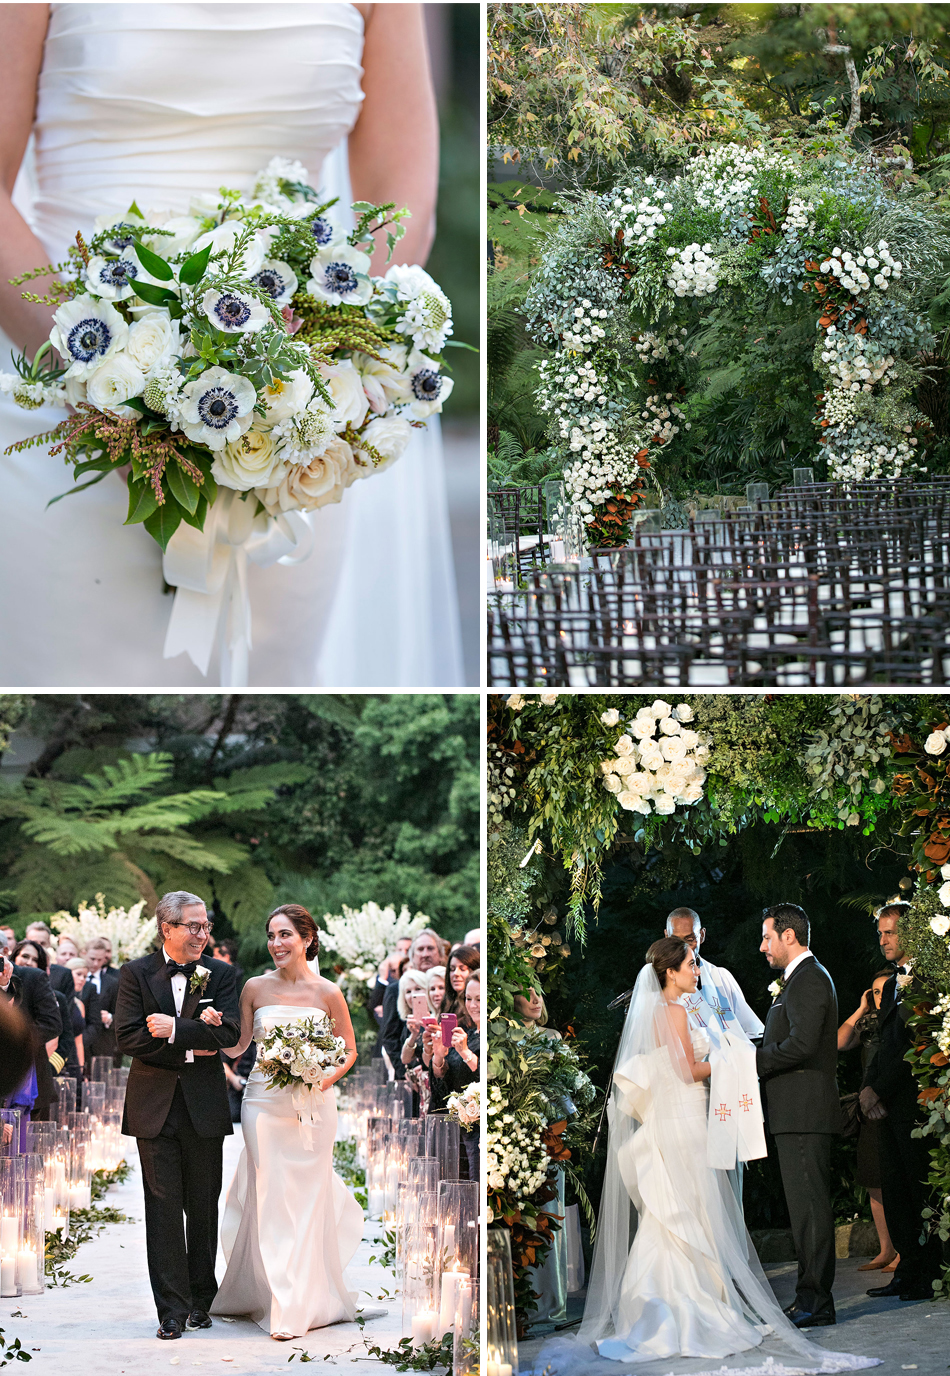 internationaleventcompany.com | International Event Company Los Angeles Wedding Planner and Designer | Weddings at Hotel Bel Air | Luxury Event Planners in Southern California _ (1).jpg